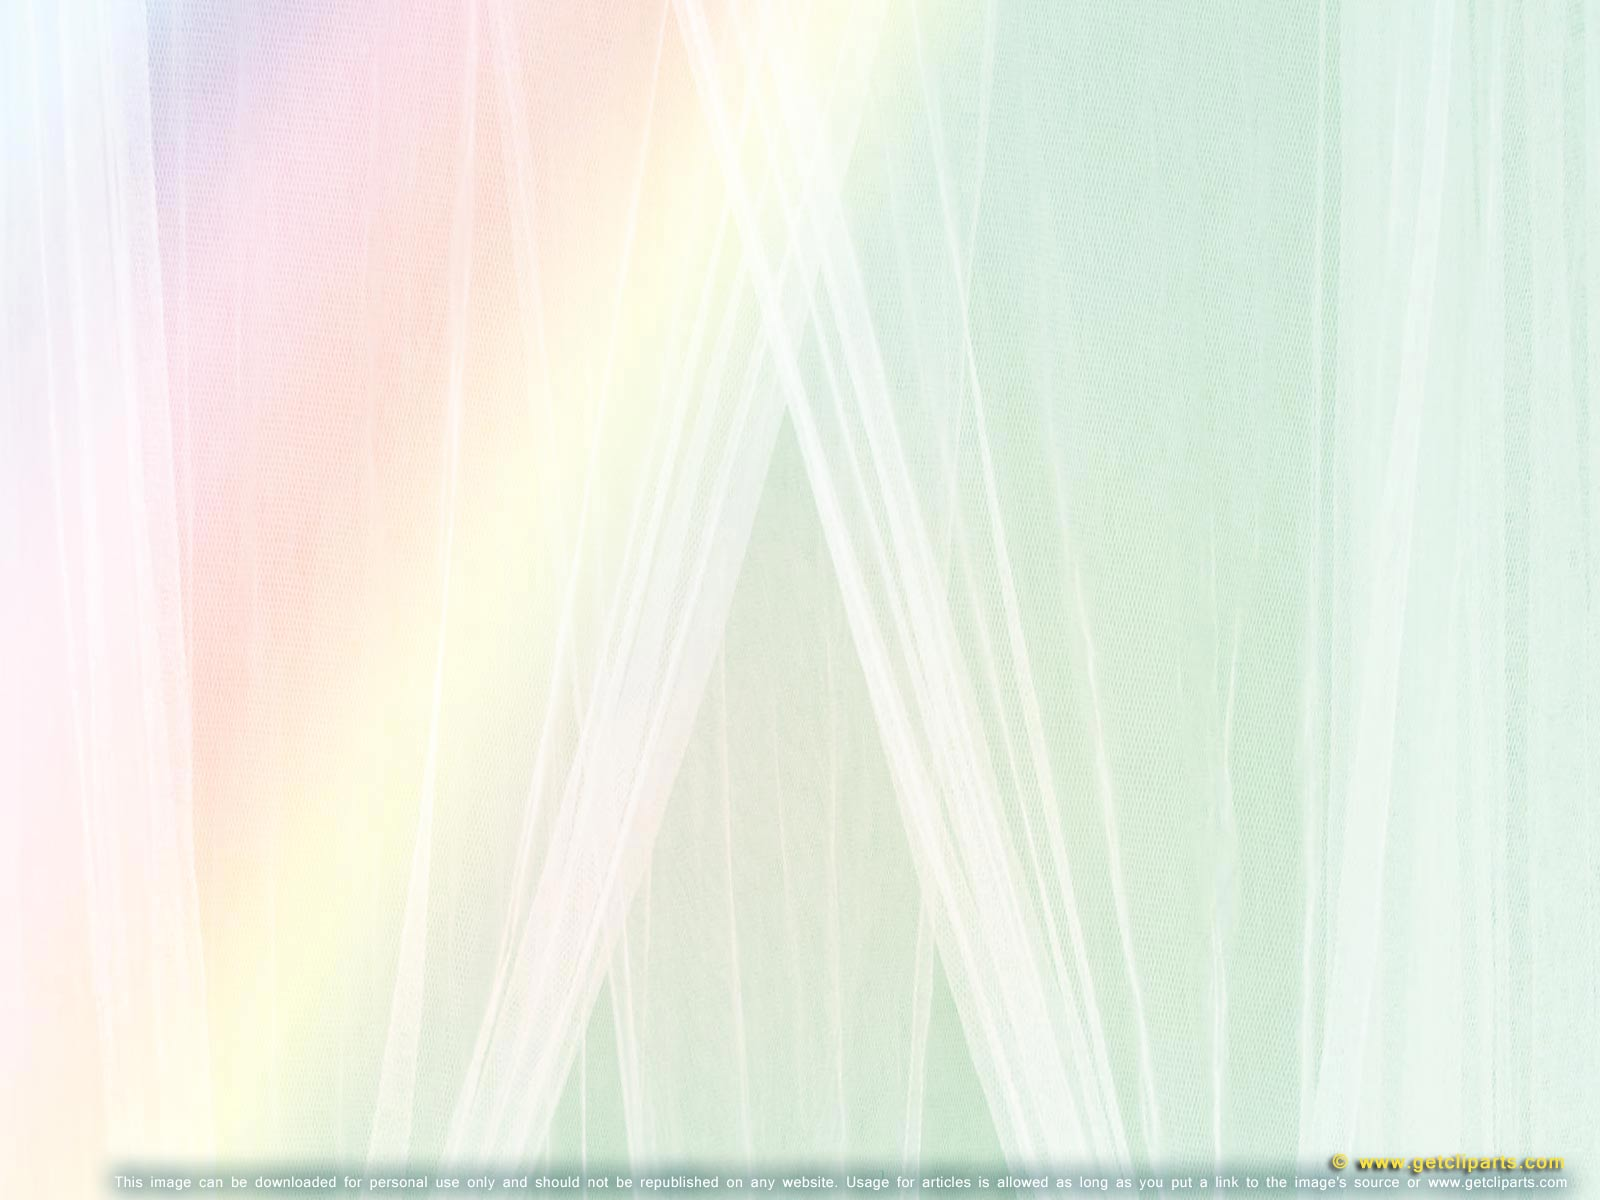 rainbow curtain | getcliparts : visual communication designs, Powerpoint templates